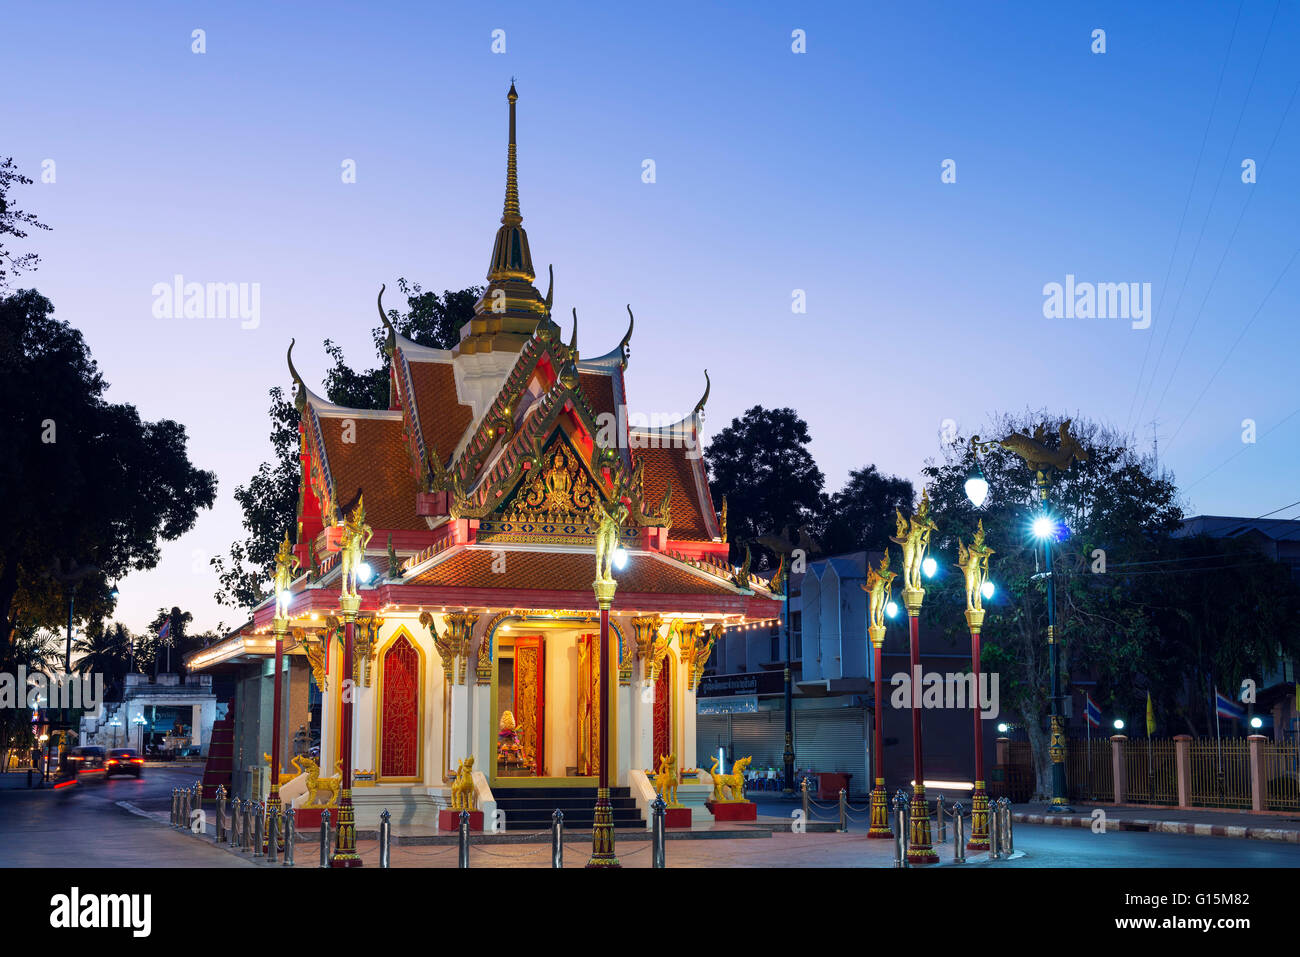 City Gate, Kanchanaburi, Thaïlande, Asie du Sud, Asie Photo Stock